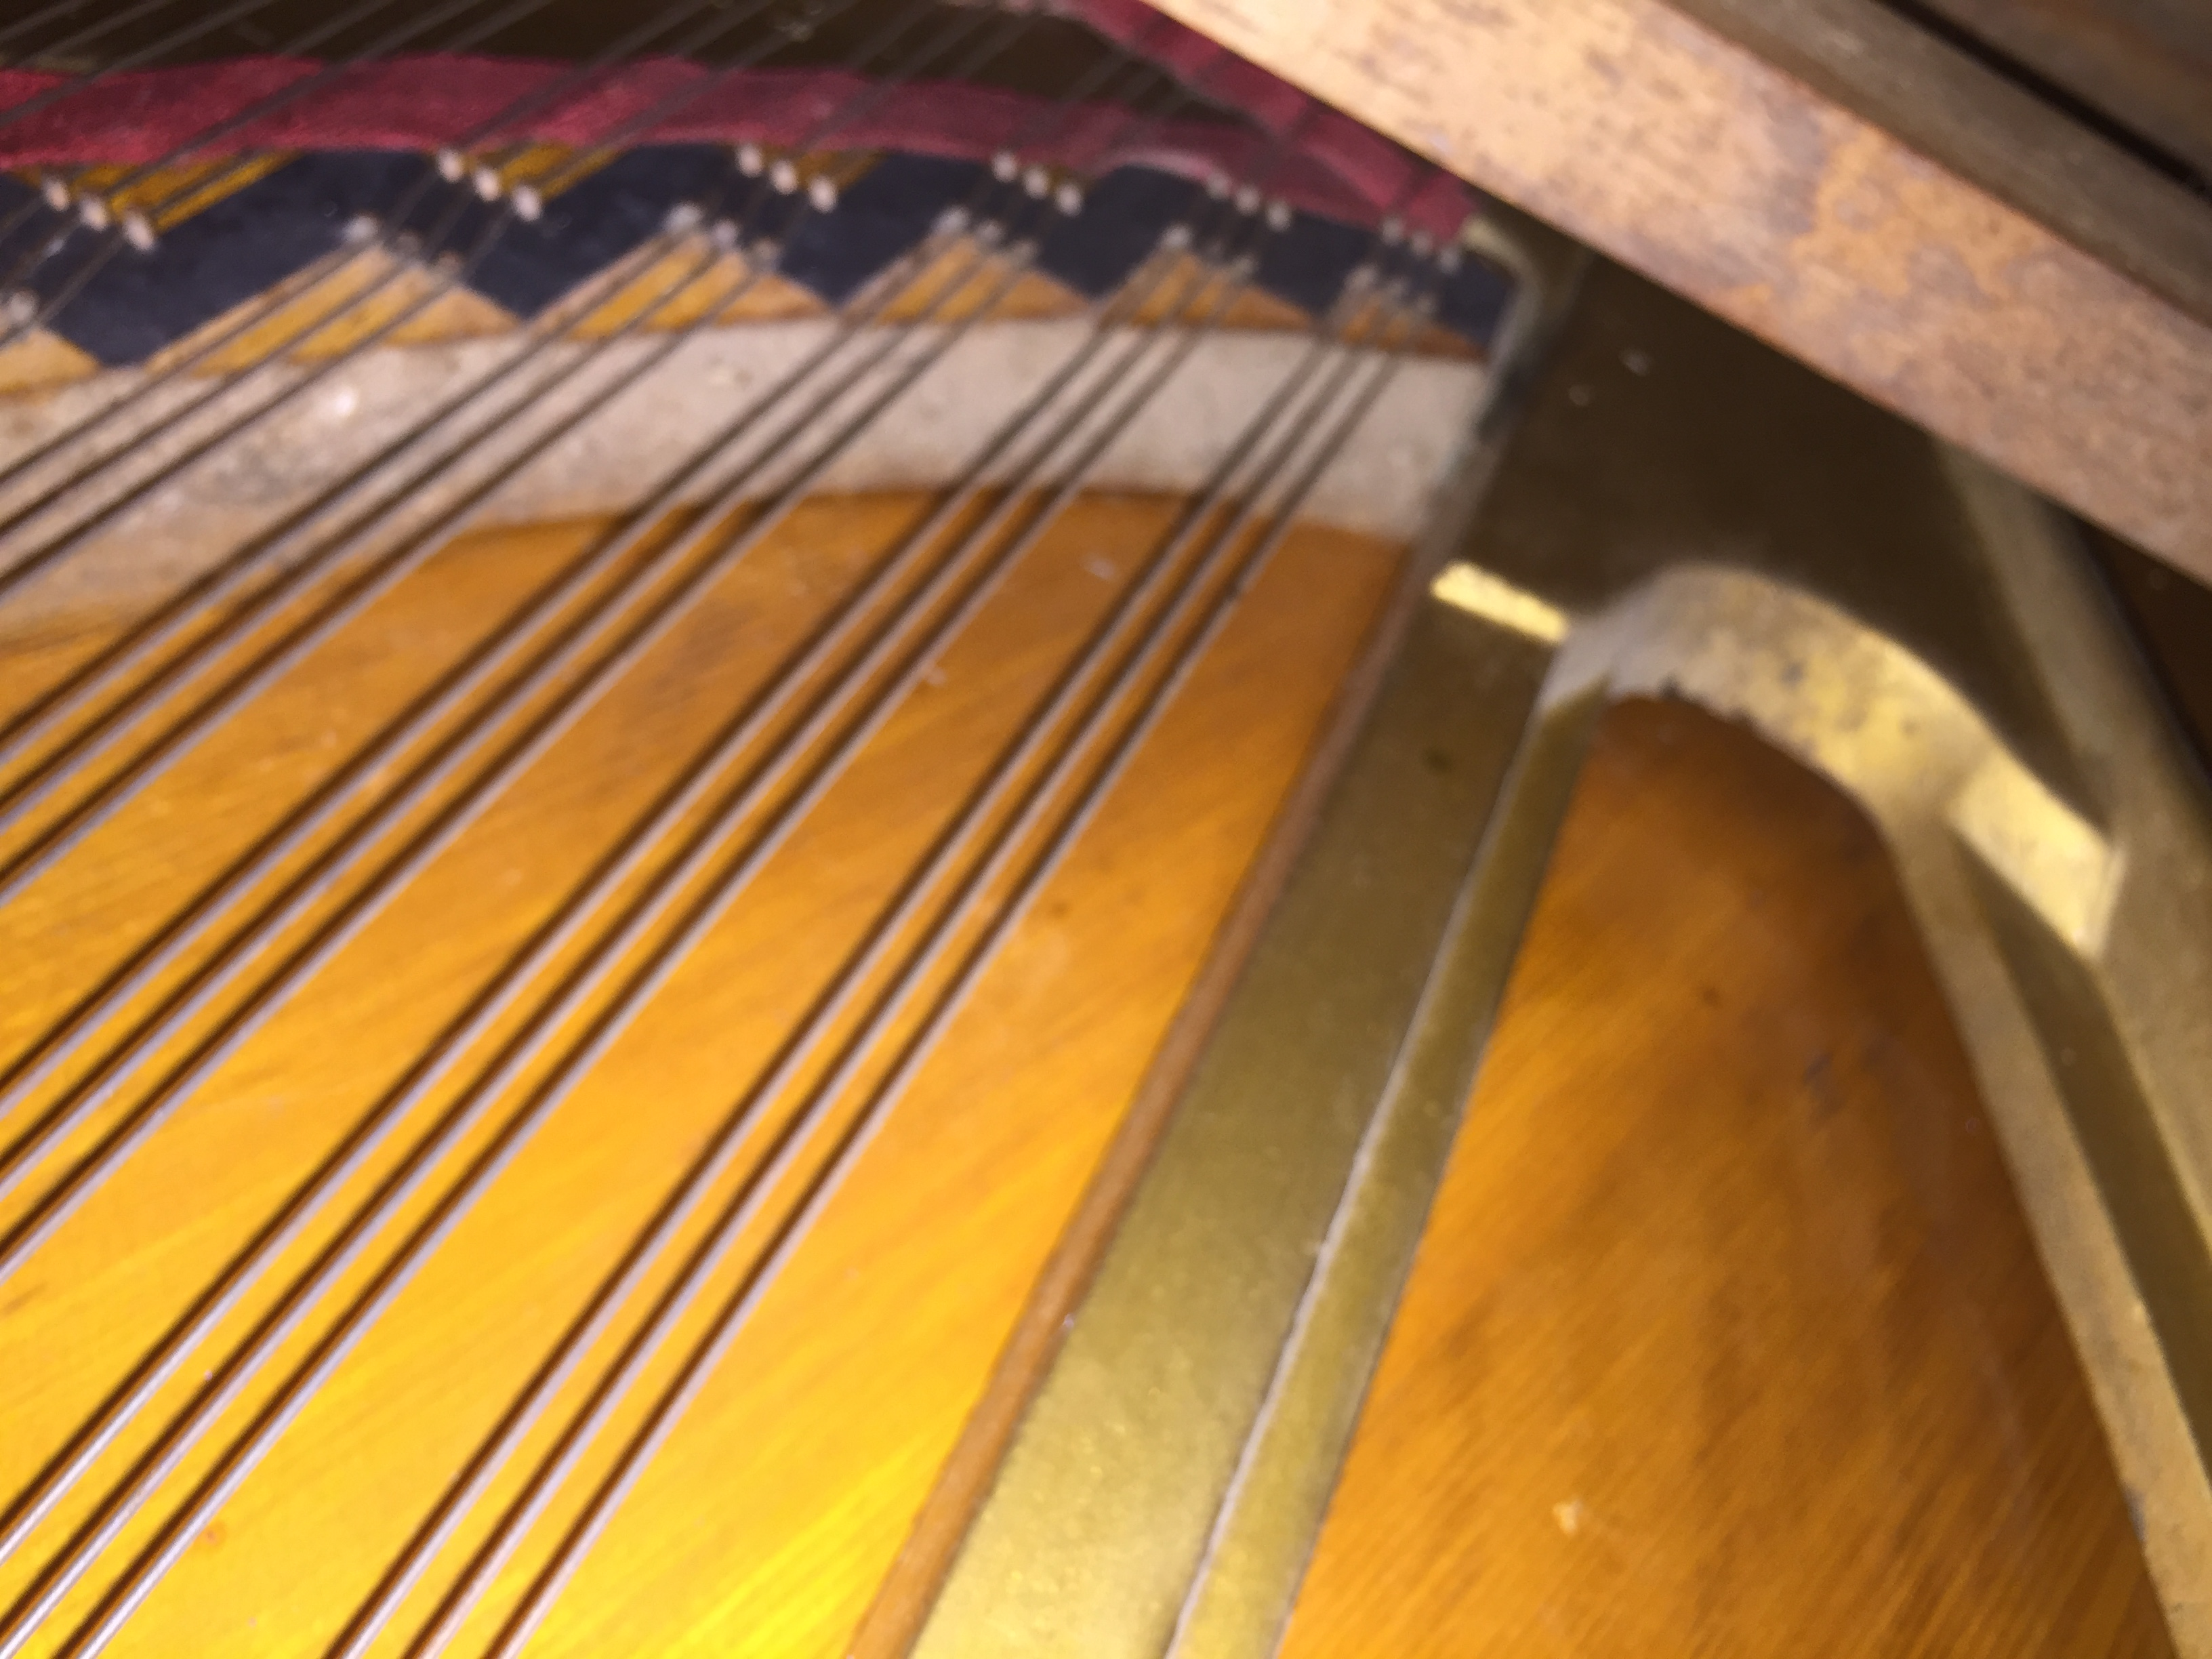 sY6a9pQrgzK8Yp1gvw6F_Steinway upright tenor section of bridge.JPG